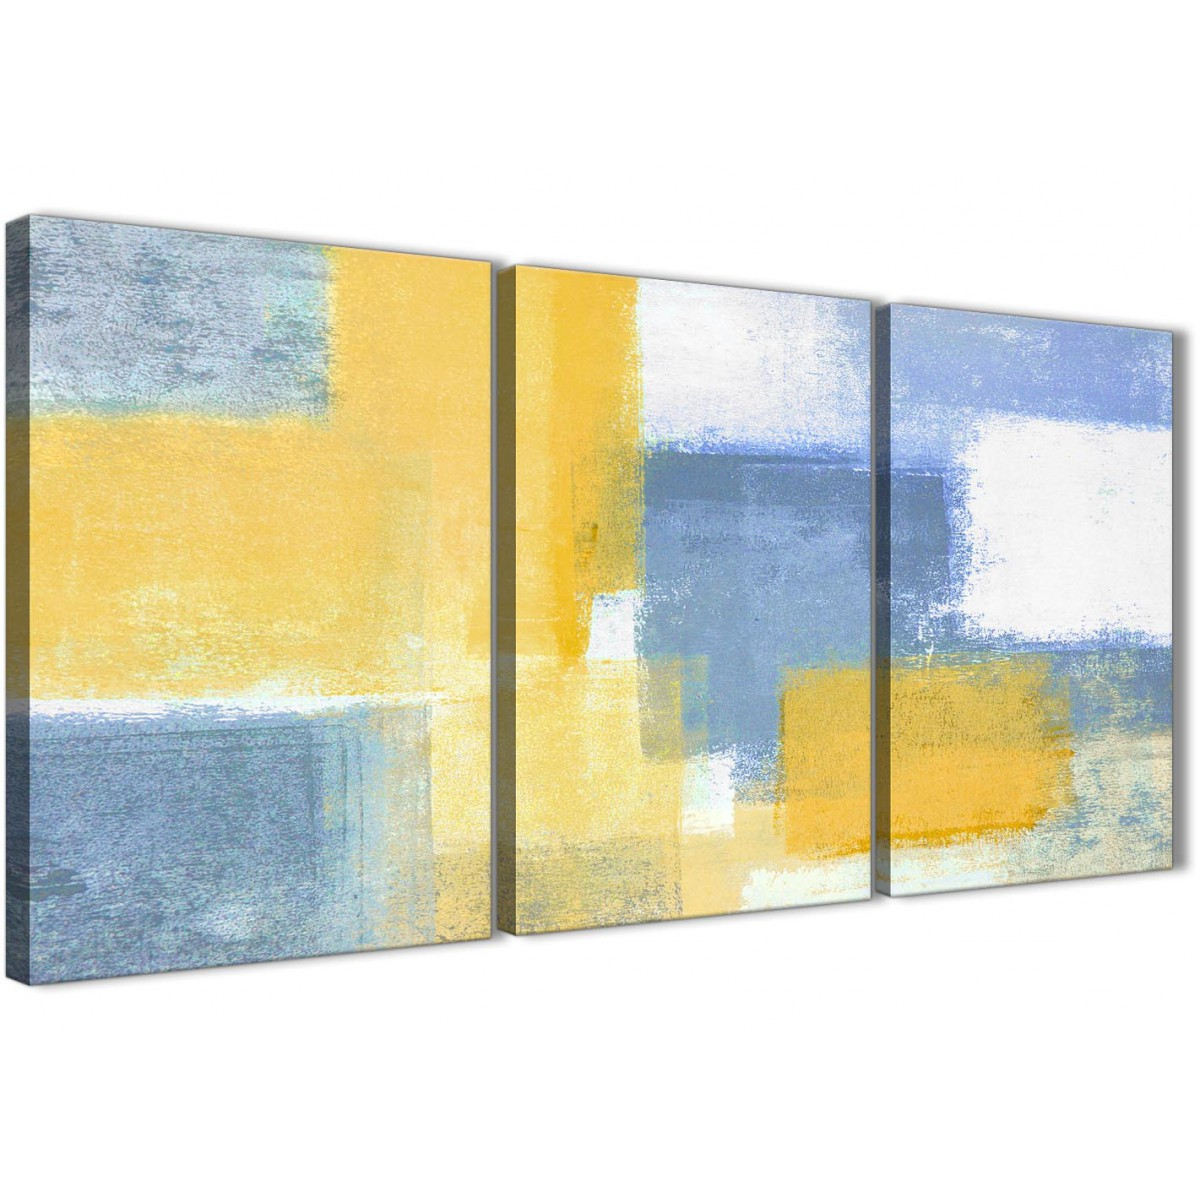 3 Piece Mustard Yellow Blue Dining Room Canvas Wall Art Decor